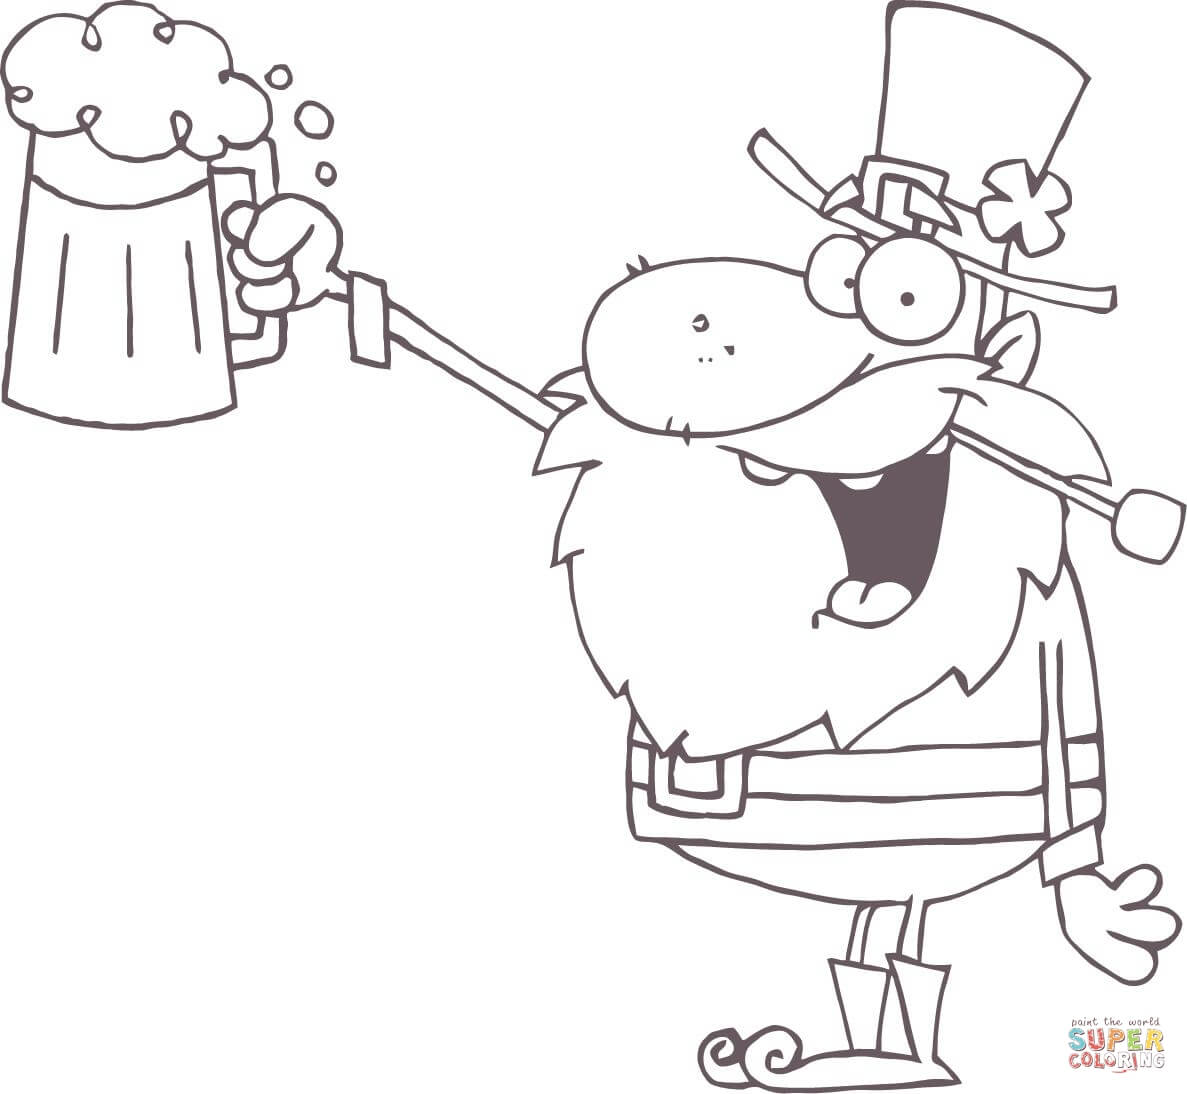 1187x1094 Lucky Leprechaun Toasting With A Mug Of Beer Coloring Page Free